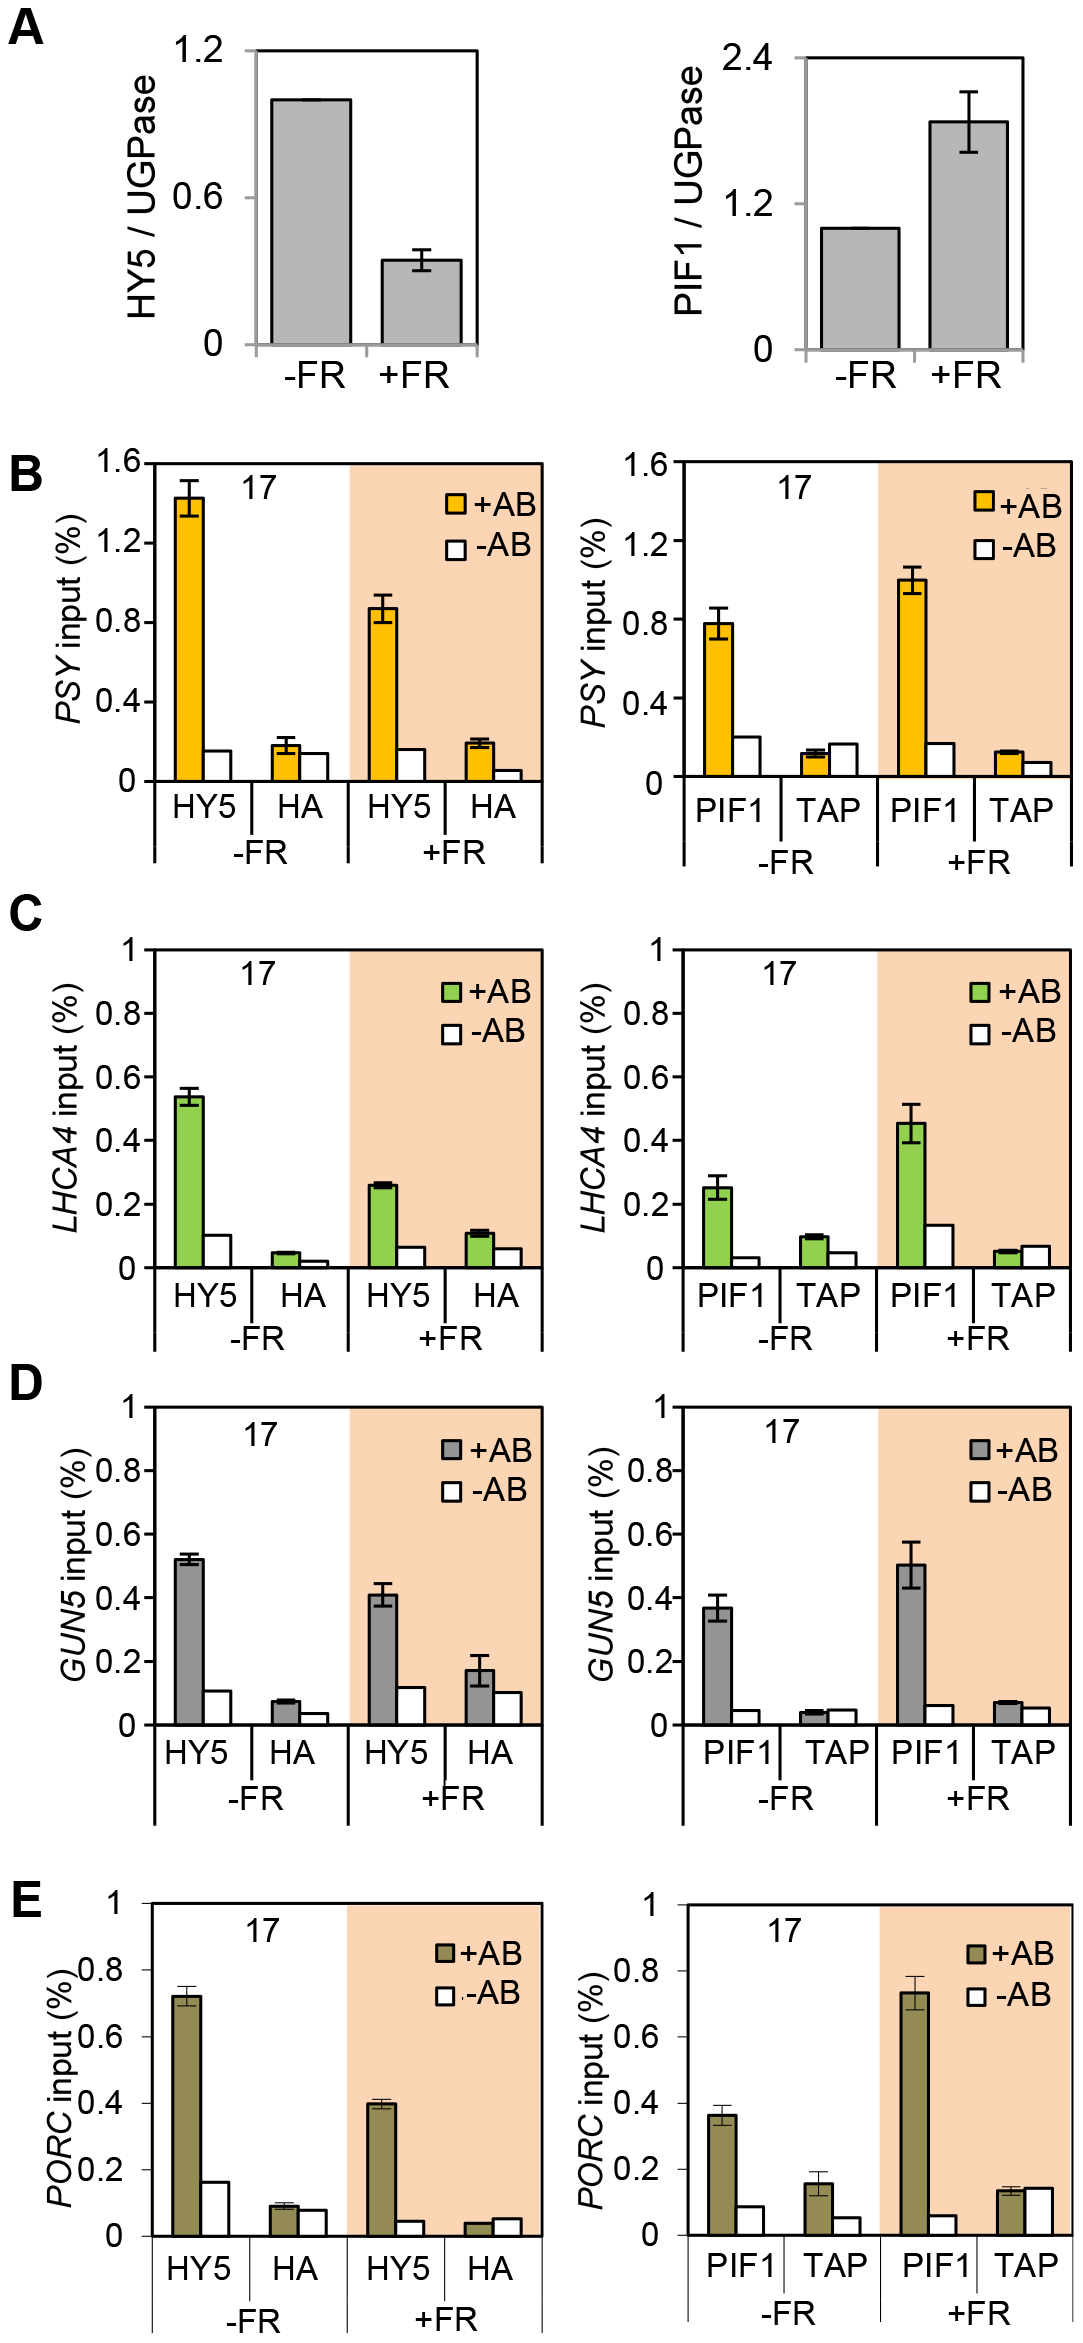 End of Day FR (EOD-FR) effect over 35S::HA-HY5 and 35S::TAP-PIF1 binding to G-box regions in the promoters of genes related to carotenoids and chlorophyll accumulation at 17°C.